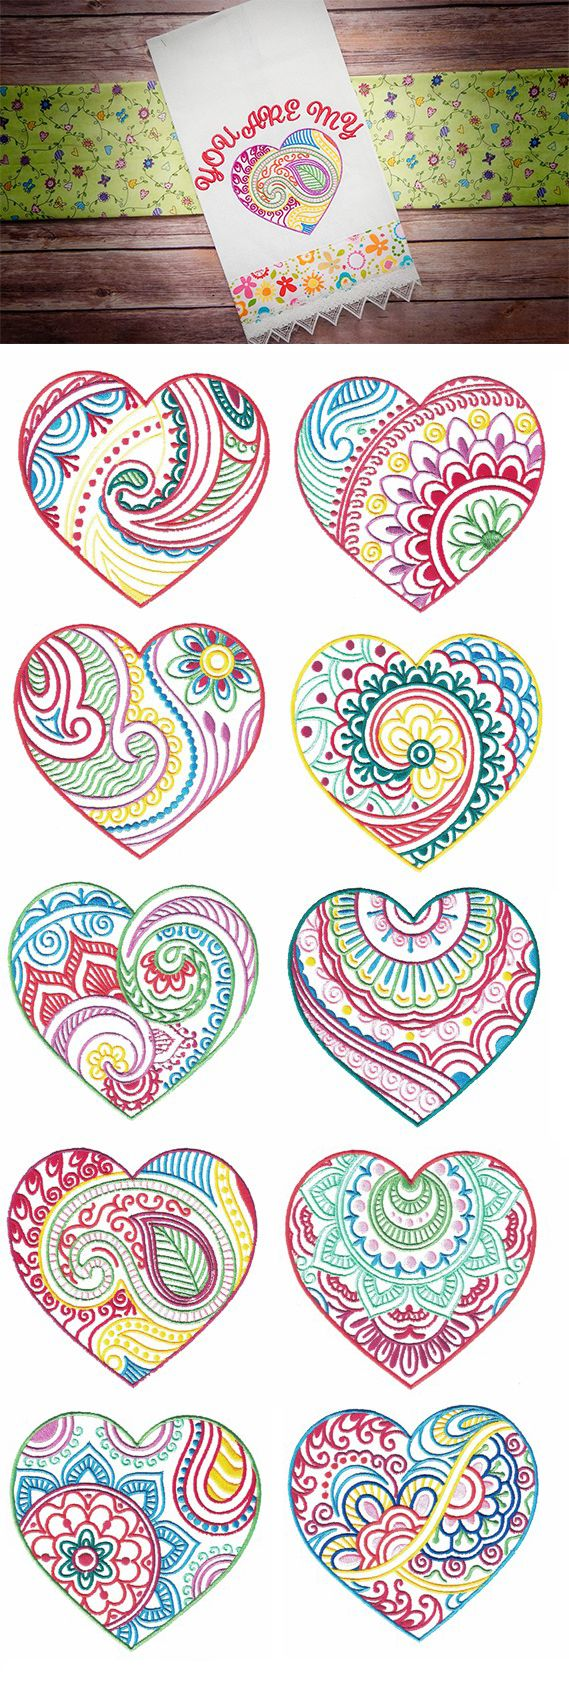 Mehndi Hearts design set available for instant download atdesignsbyjuju.com